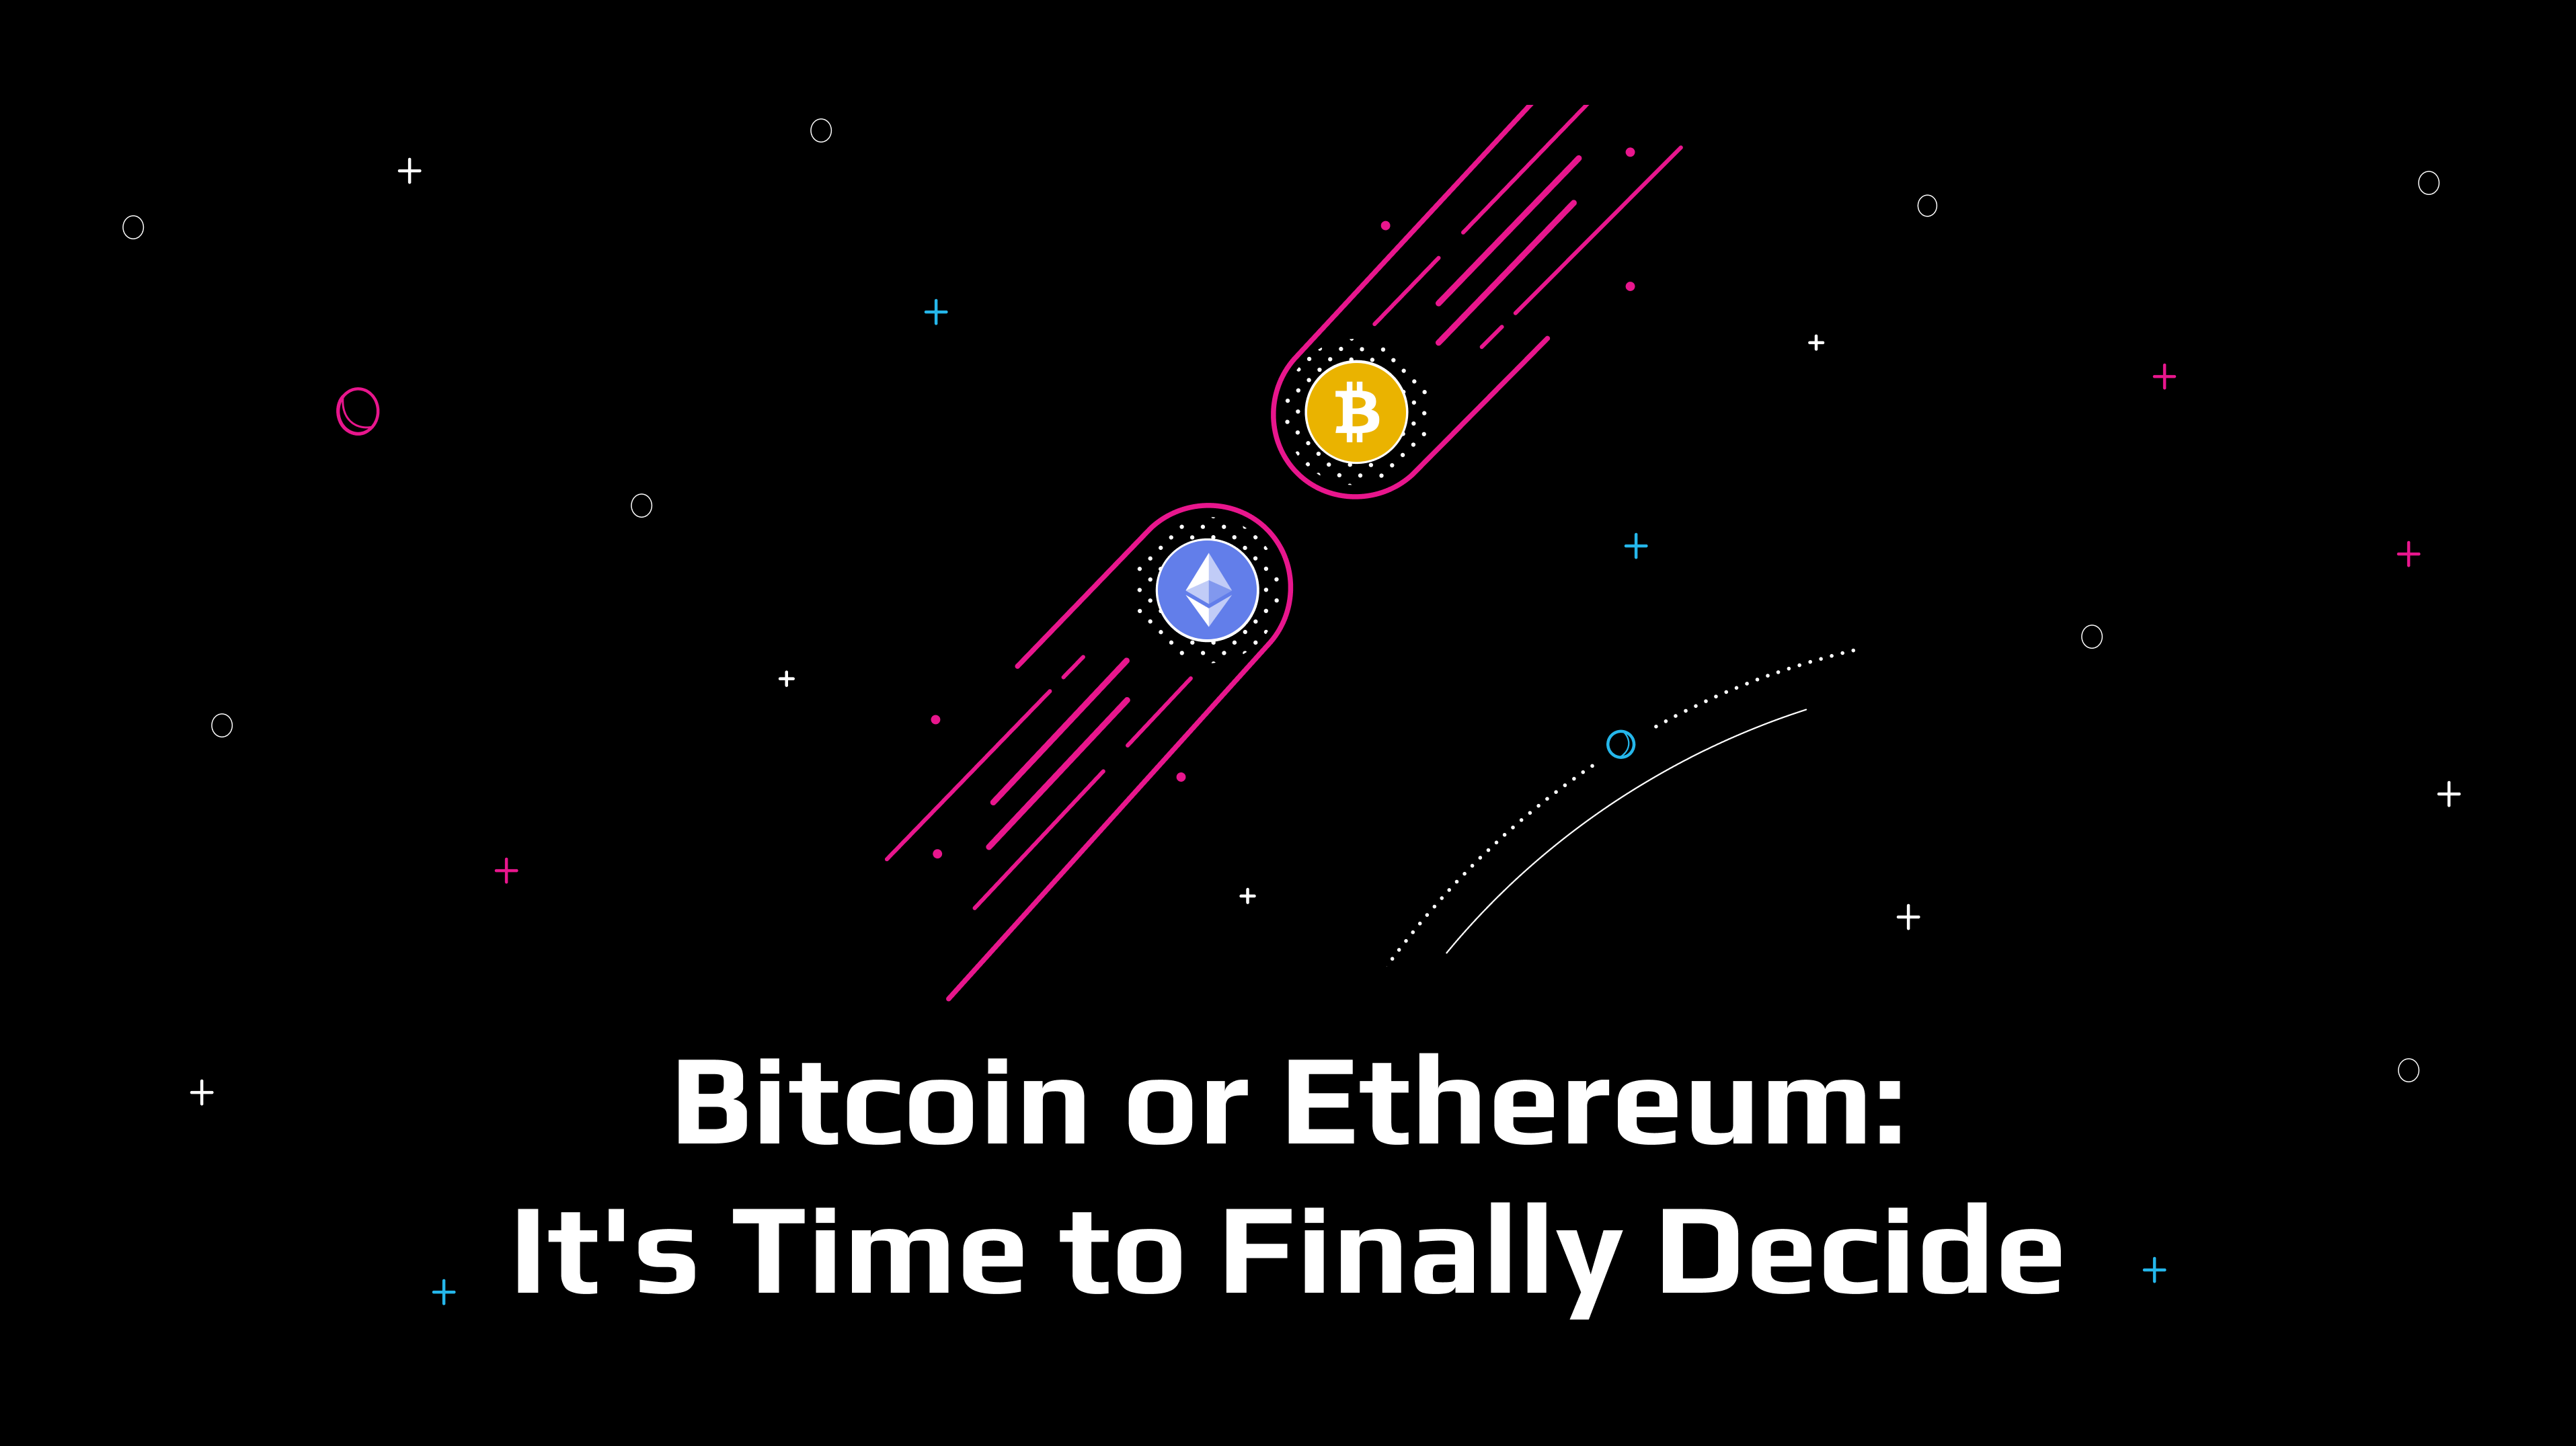 Bitcoin or Ethereum: It's Time to Finally Decide